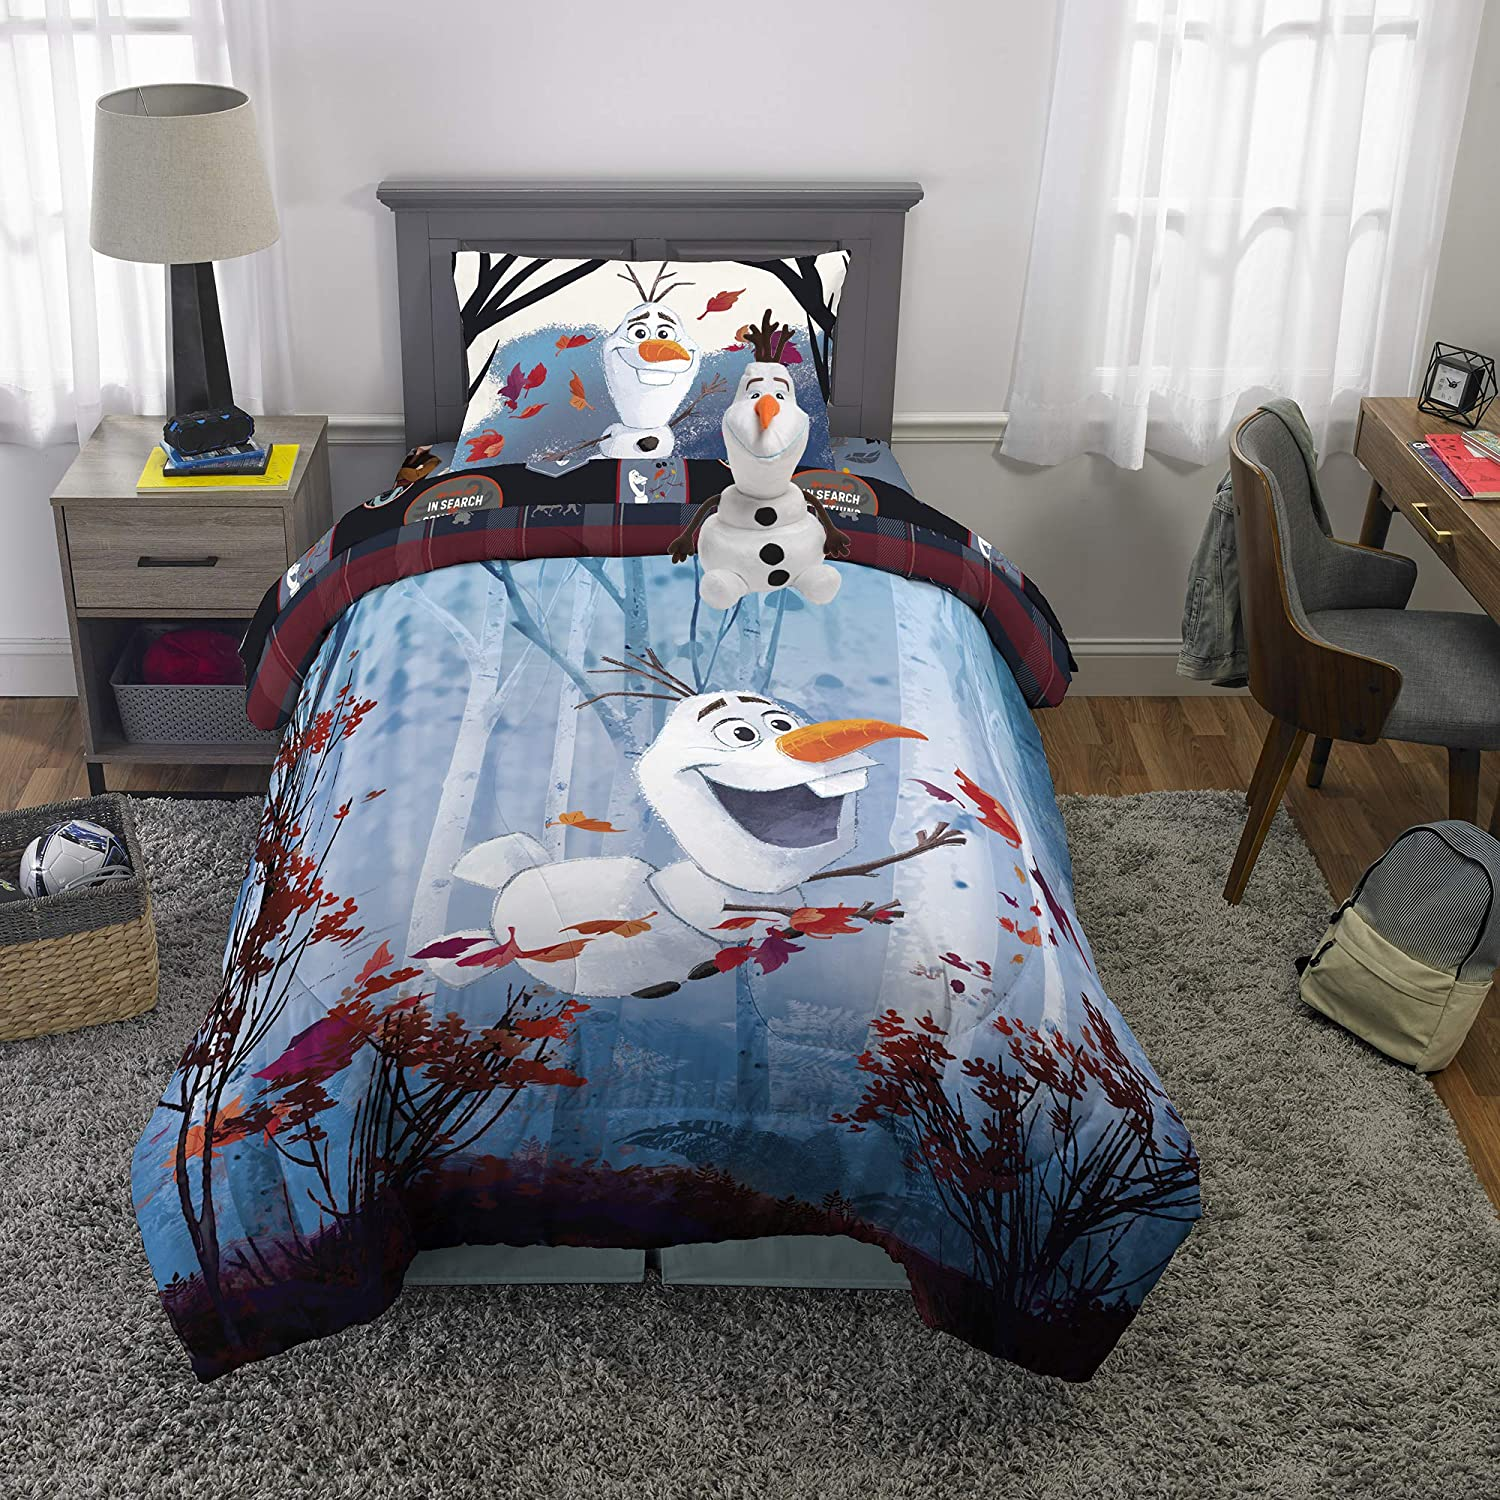 Franco Kids Bedding Super Soft Comforter with Sheets and Plush Cuddle Pillow Set, 5 Piece Twin Size, Disney Frozen 2 Olaf